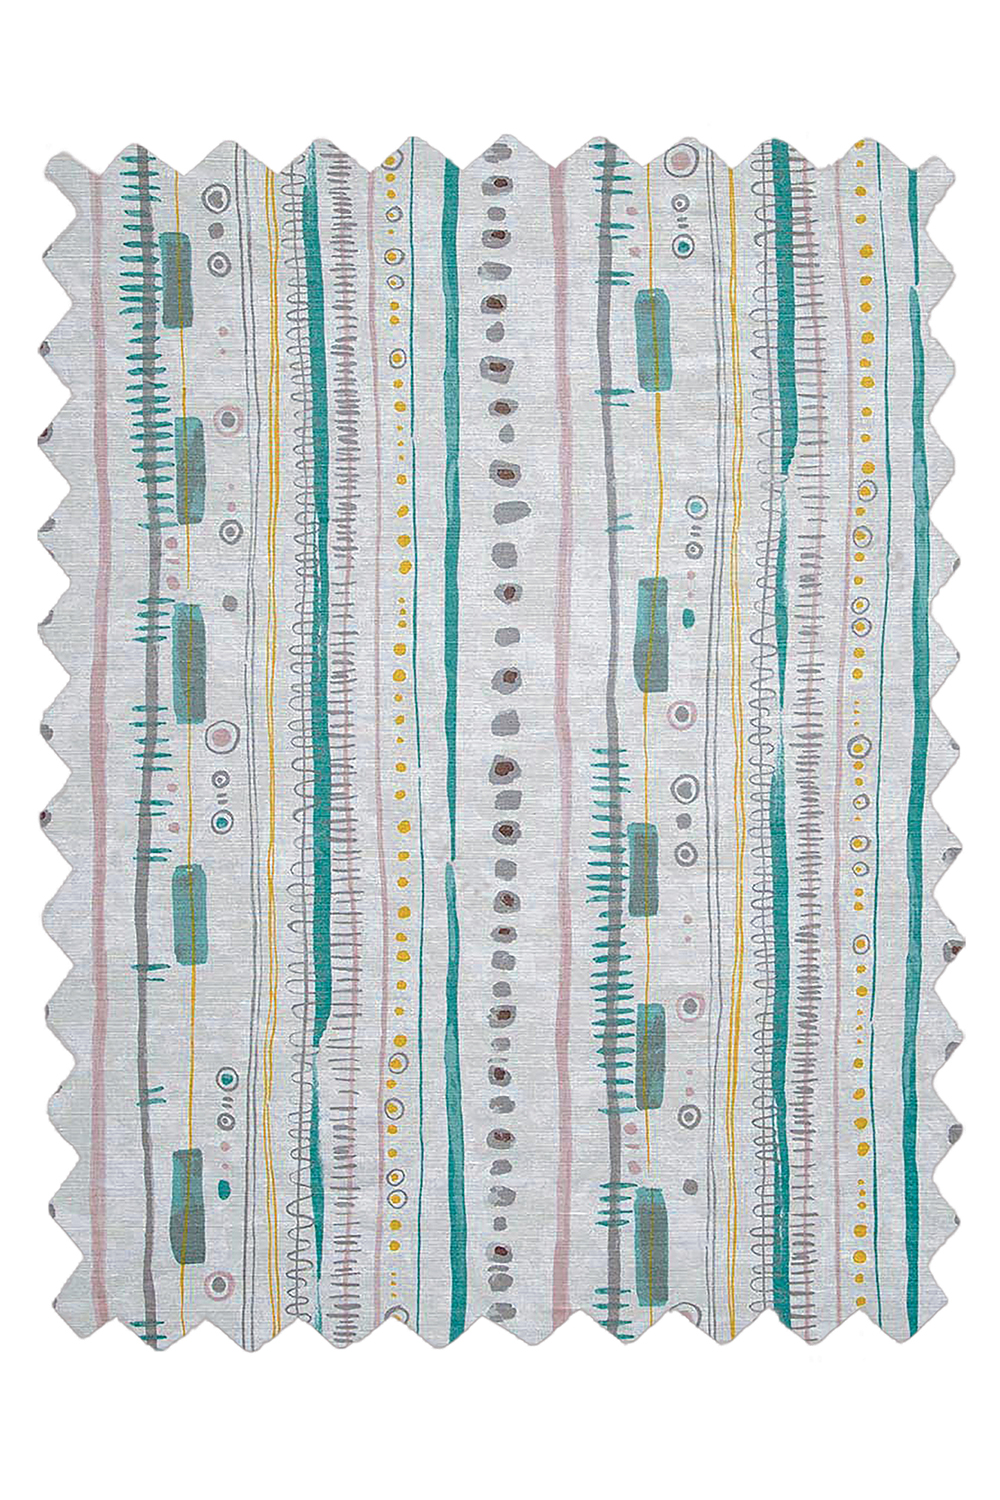 Piano-in-Provence-zigzag-edge-swatch